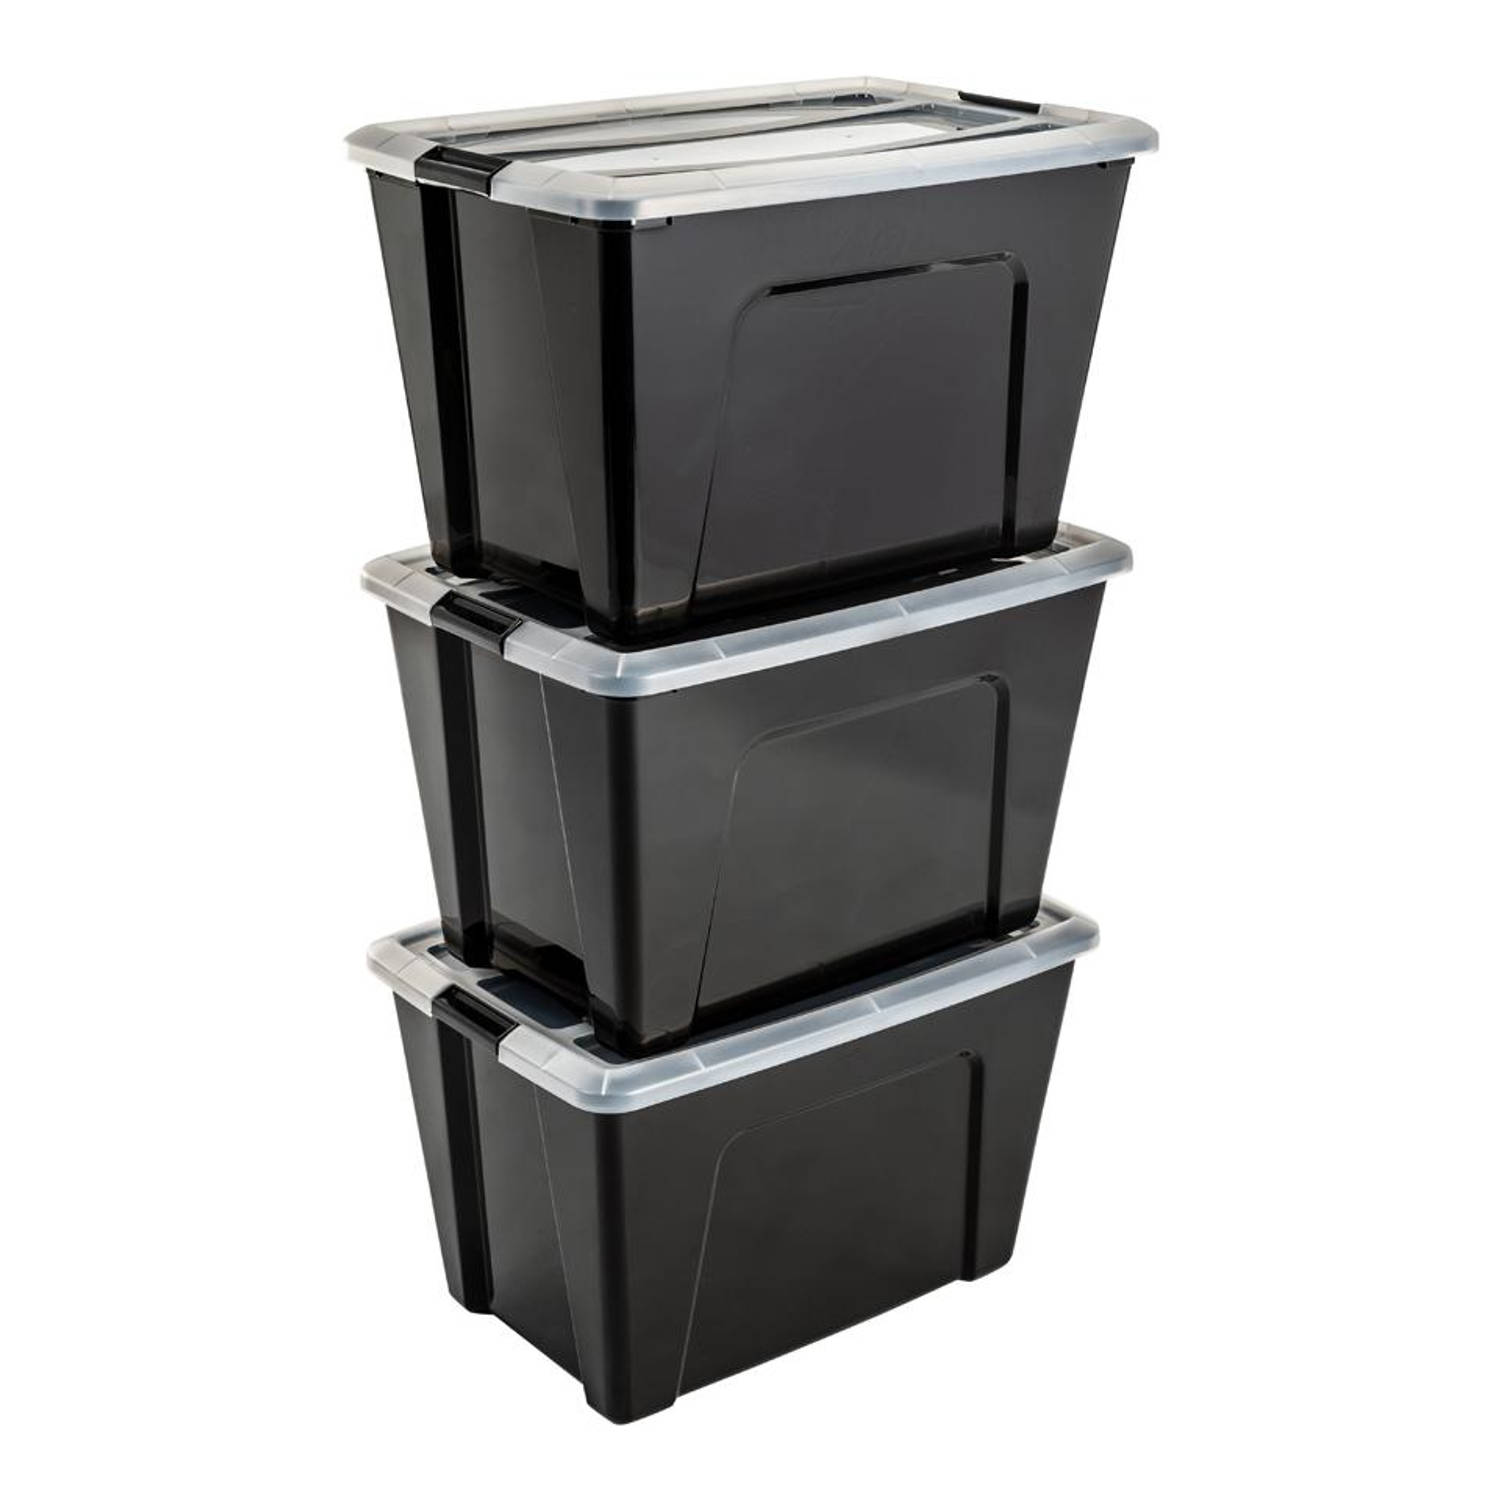 Iris Top Box opbergbox 60 liter transparant set van 3